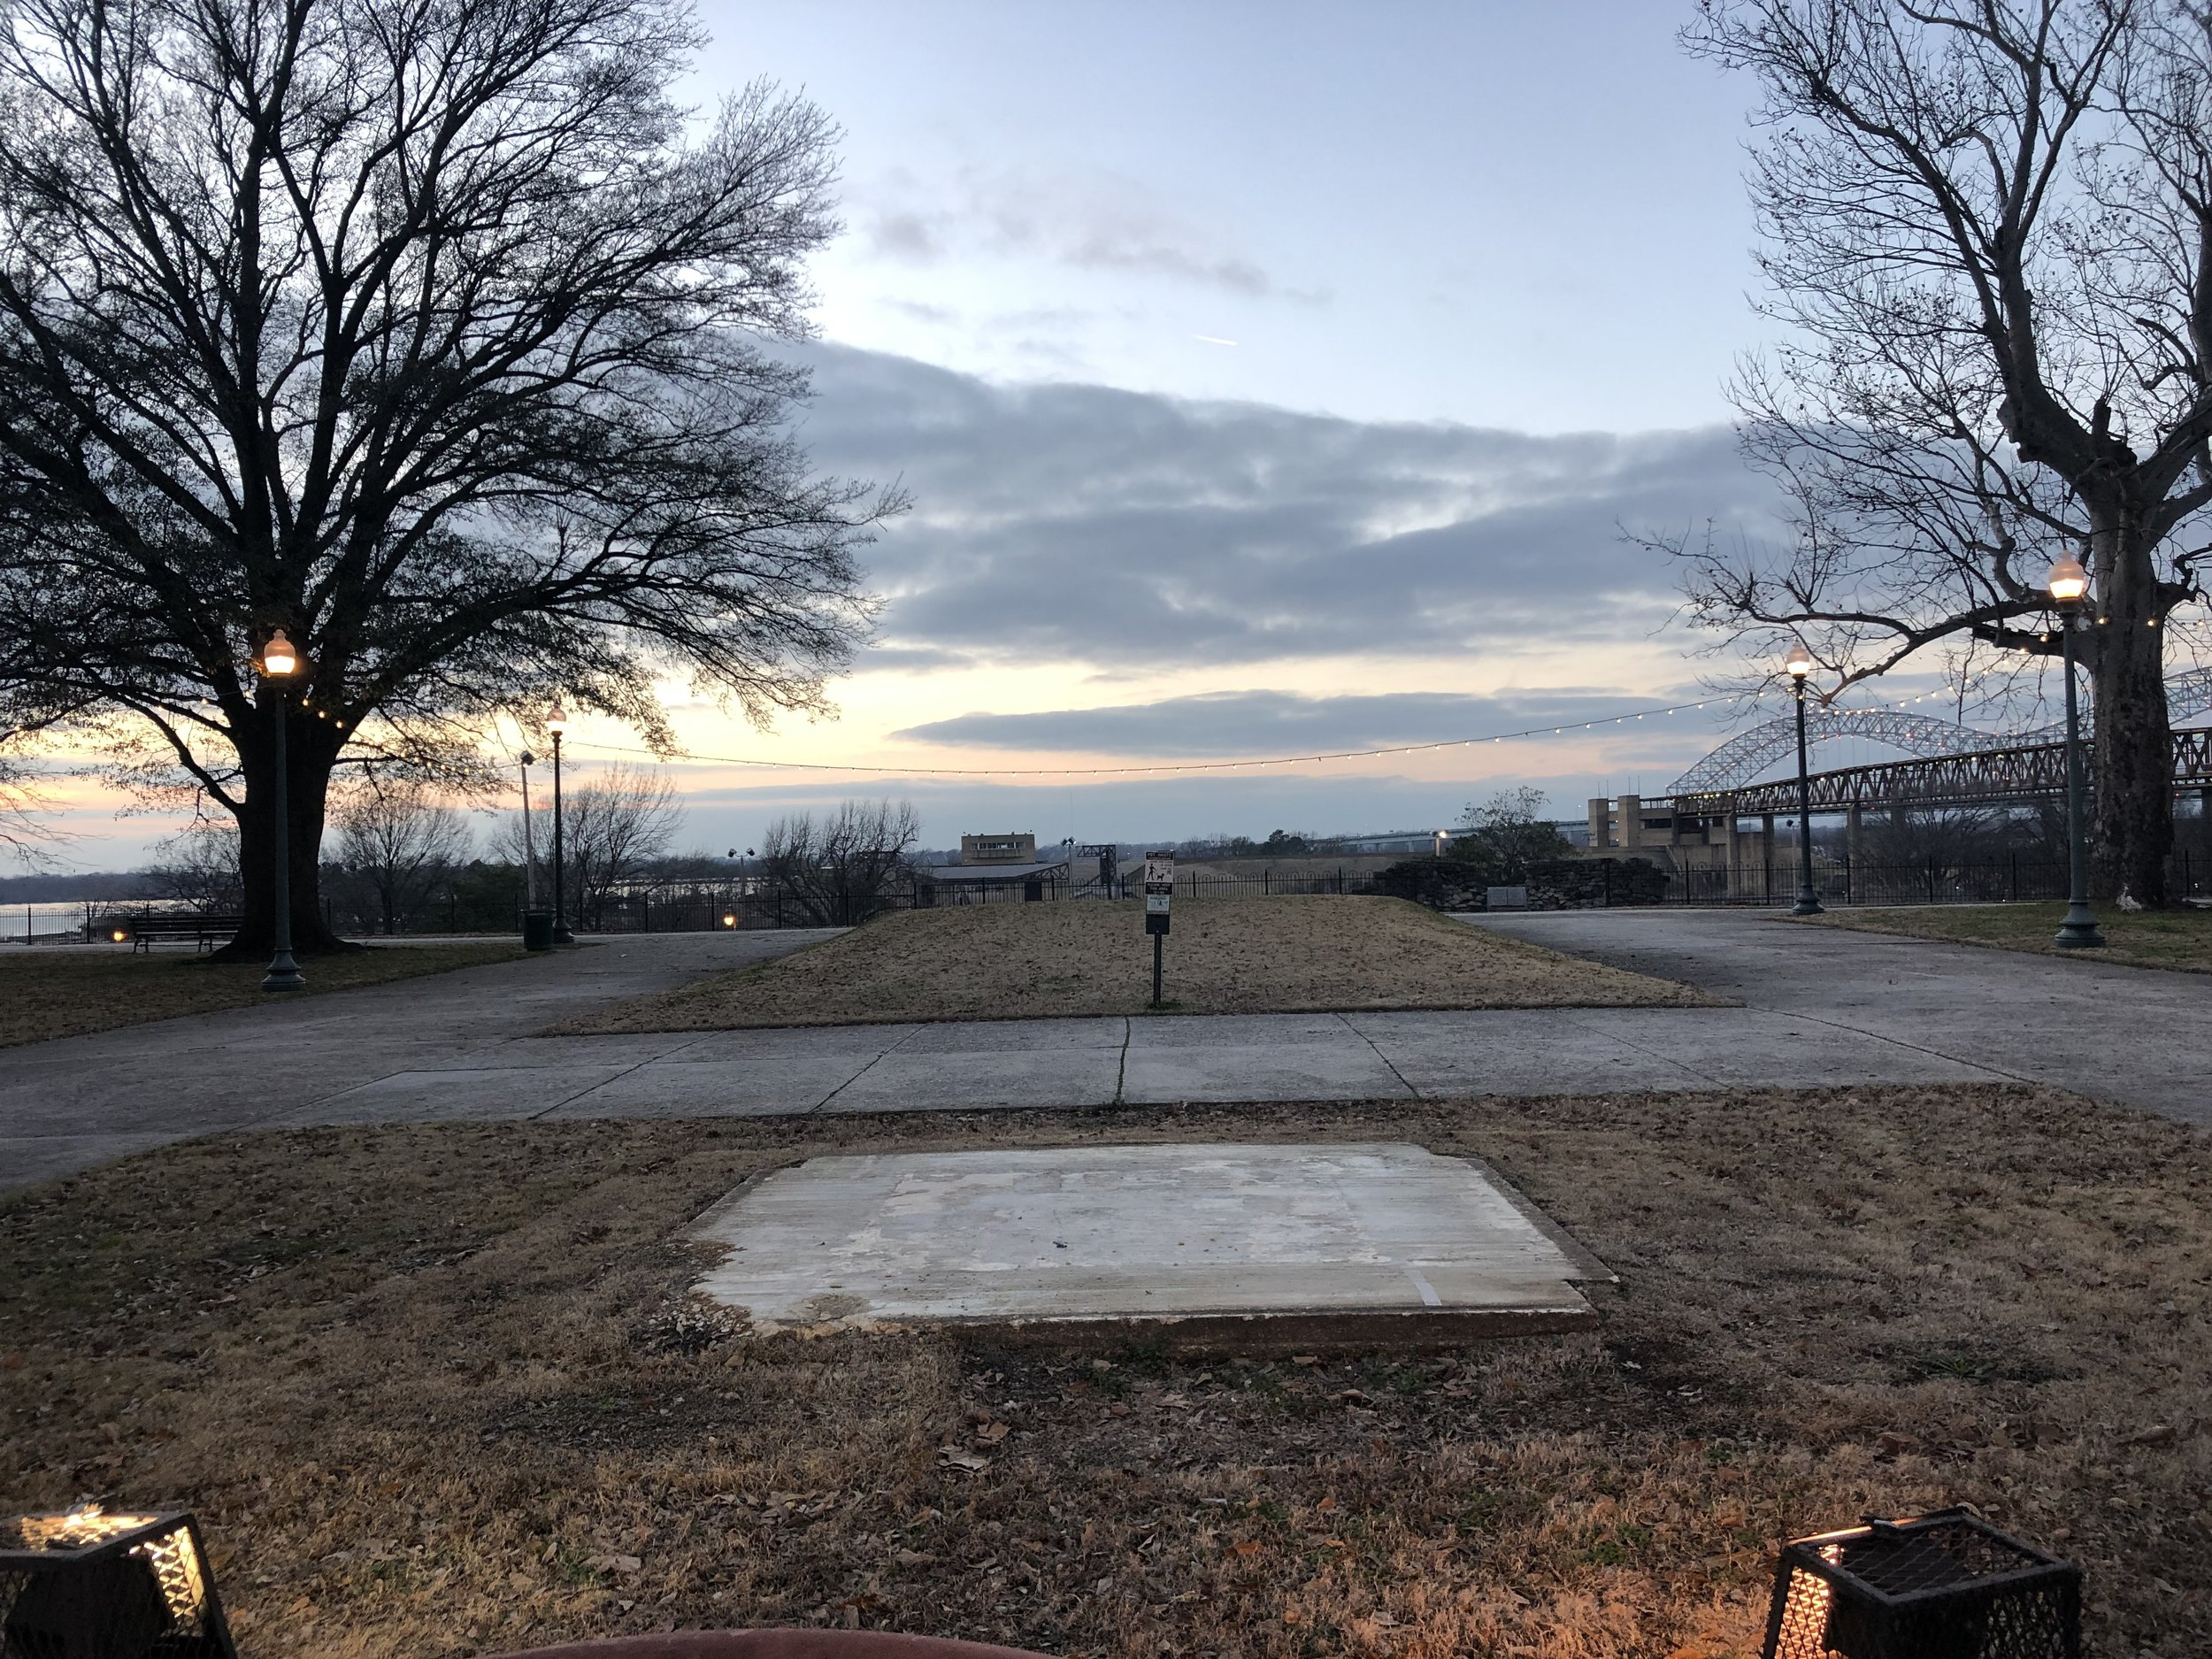 Empty concrete slab where the tall bronze statue of the President of the Confederate States of America Jefferson Davis once stood, Memphis Park, Memphis, Tennessee. (Photo by author)